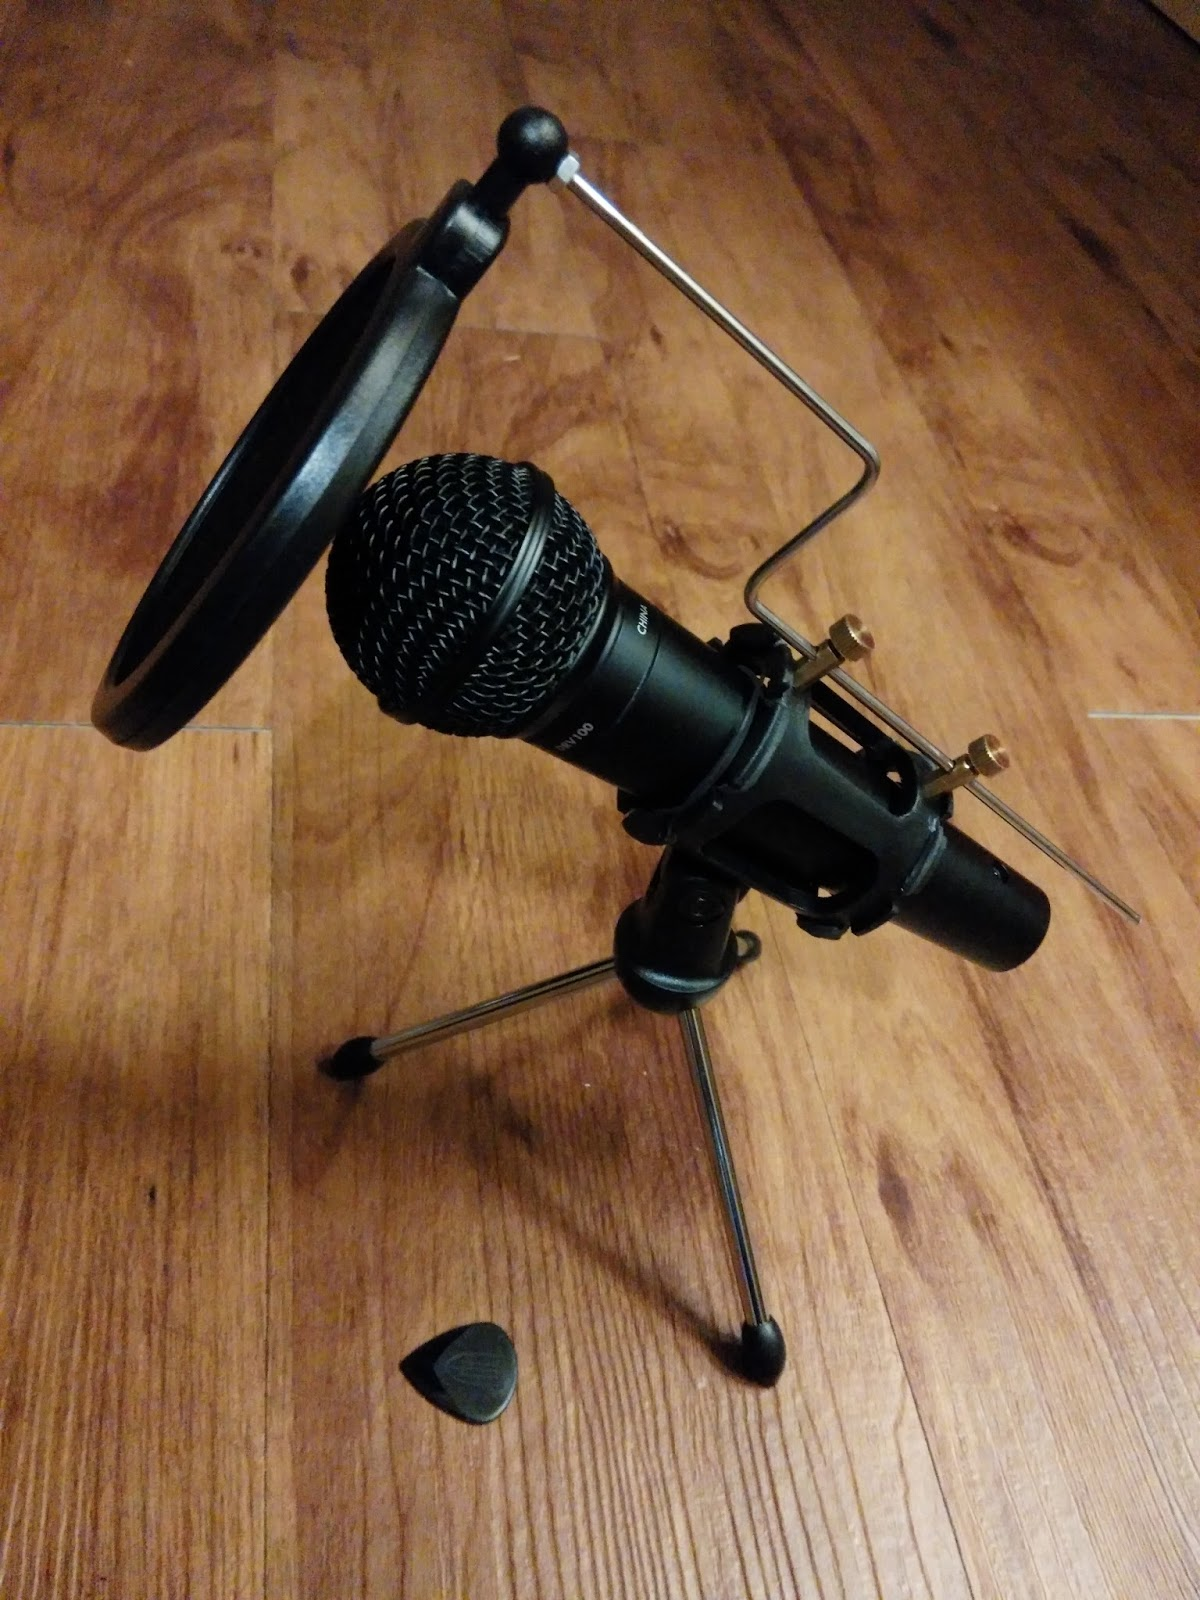 Mic Stand With Pop Filter : mattwins neewer microphone stand and pop filter review ~ Hamham.info Haus und Dekorationen